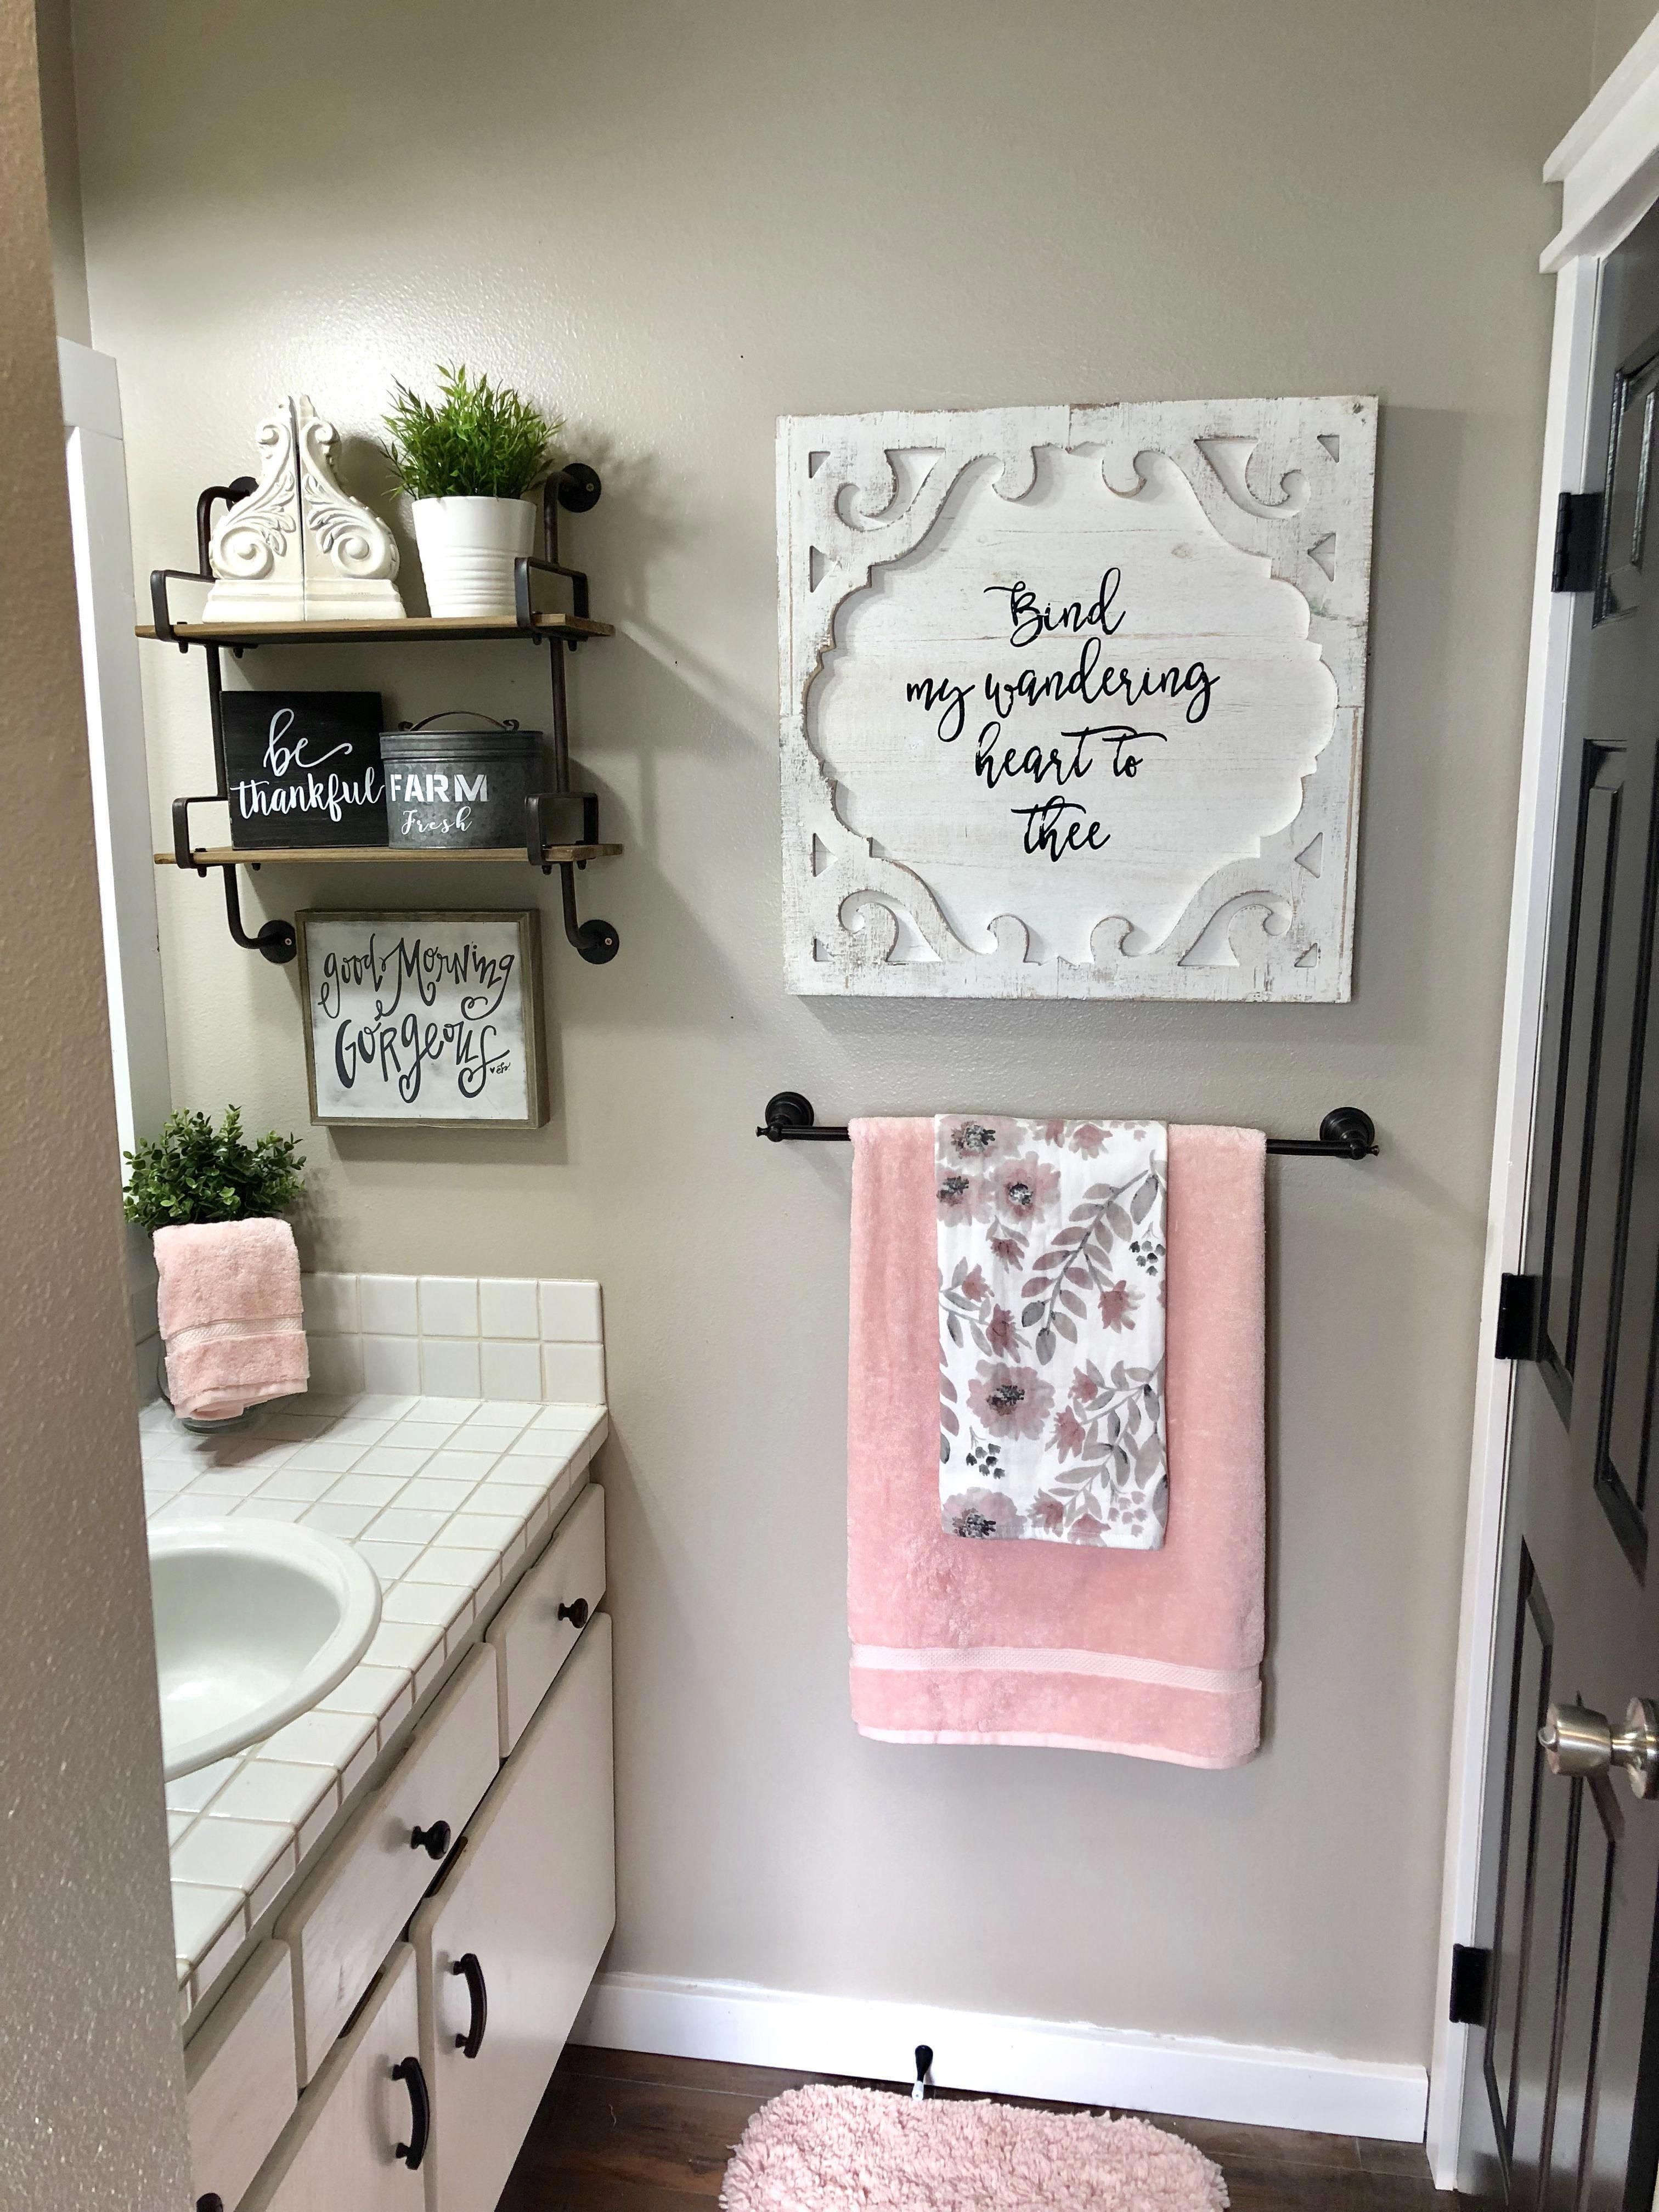 Pin By Angelica Magallanes On Restroom Decor 2020 Relaxing Bathroom Small Bathroom Decor Girl Bathroom Decor